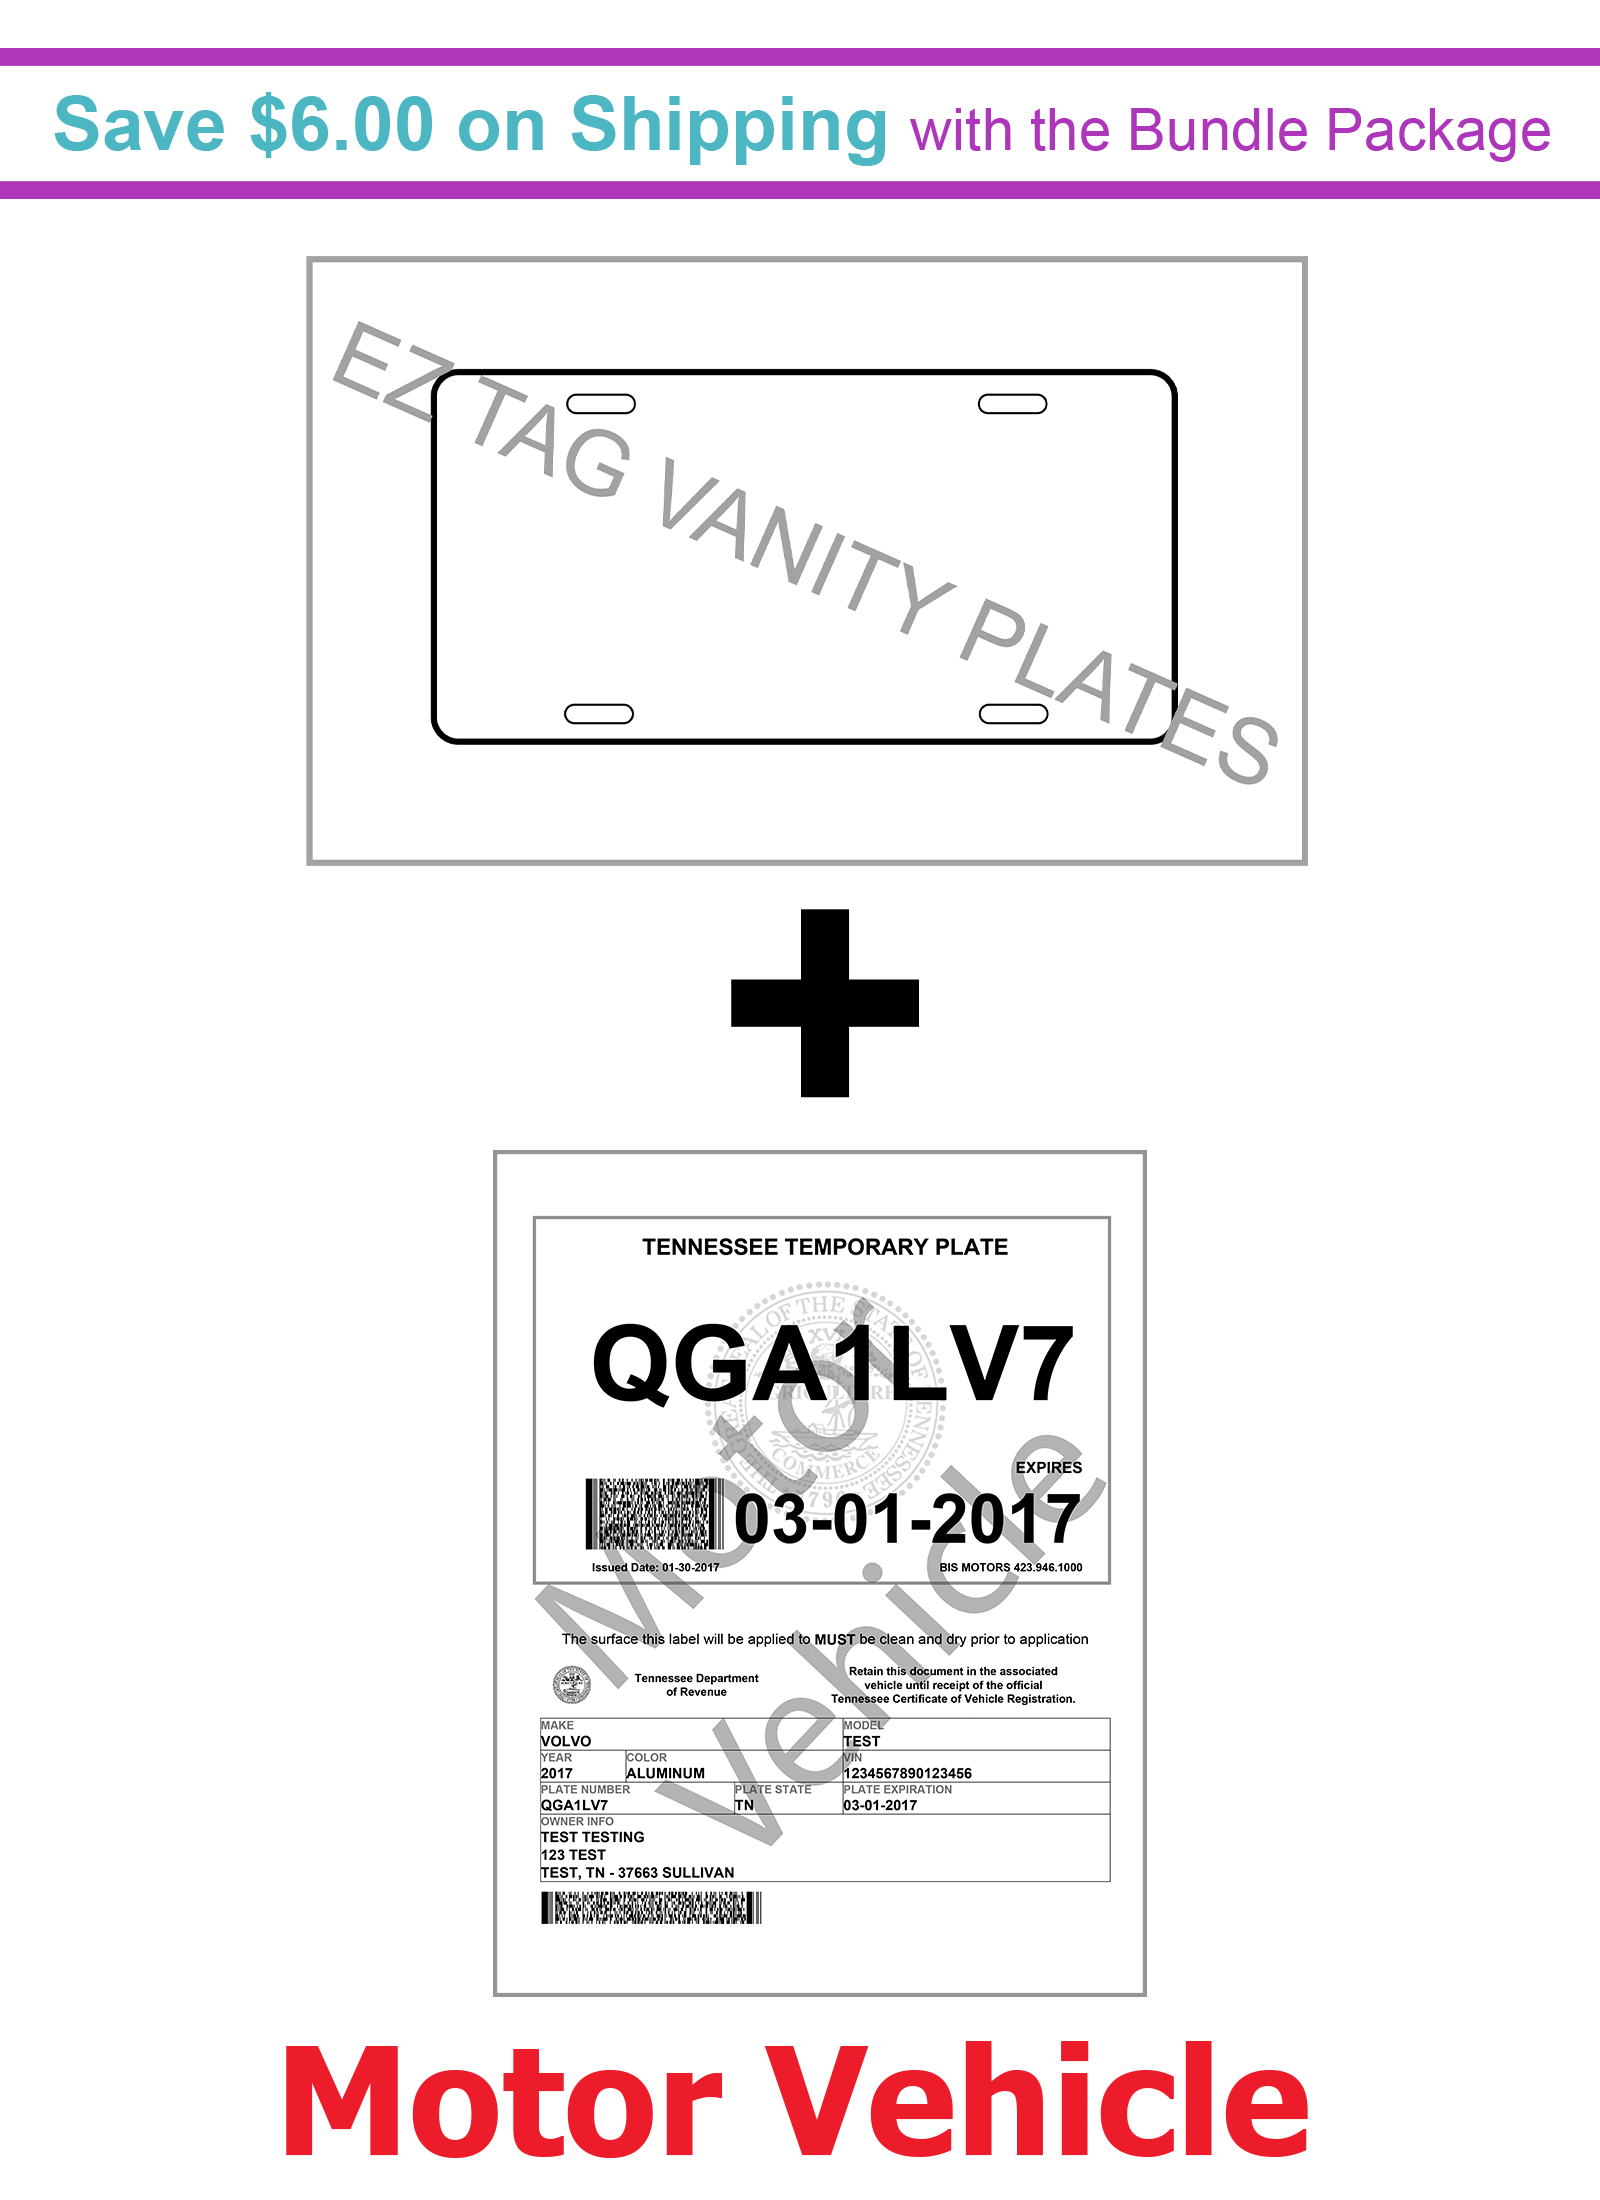 EZ Tag Motor Vehicle Paper (100 pack) and Vanity Plates (100 pack) - Save $6.00 on Shipping with Bundling<br>***Vanity plates will be in stock on Tuesday 06 March, 2018.